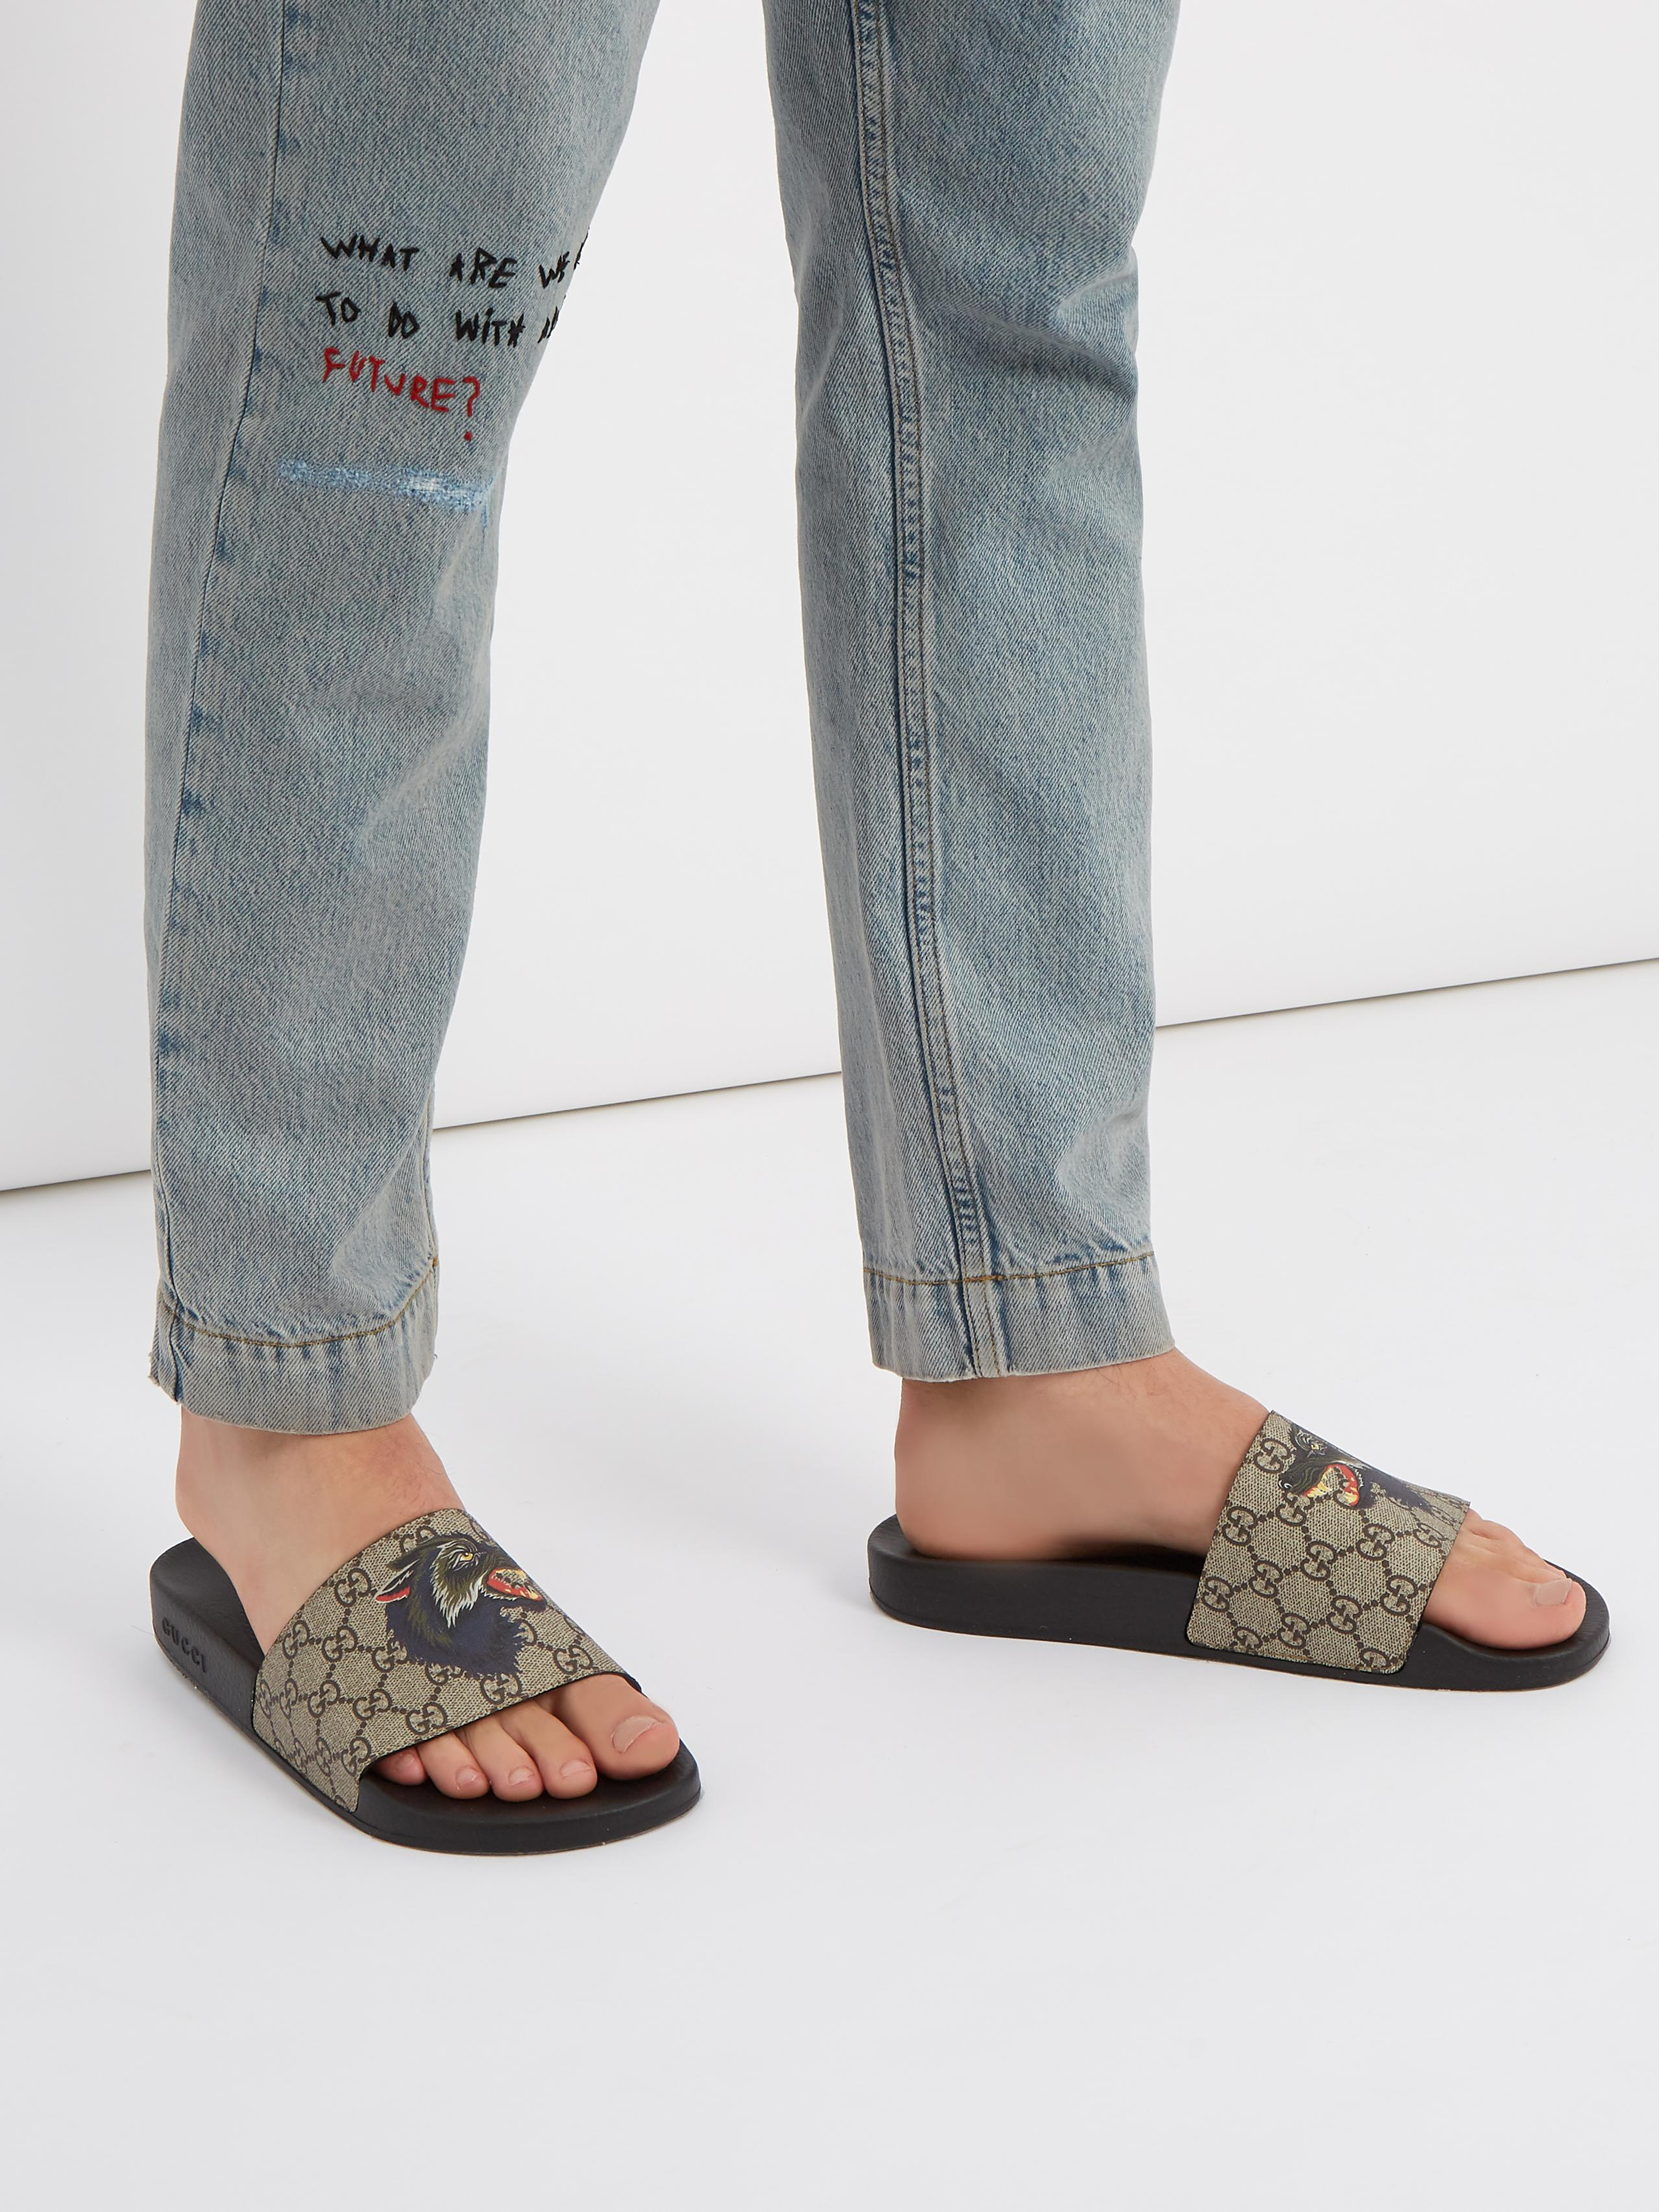 0a88c71186b48c Gucci Wolf-print Gg Supreme Slides for Men - Lyst